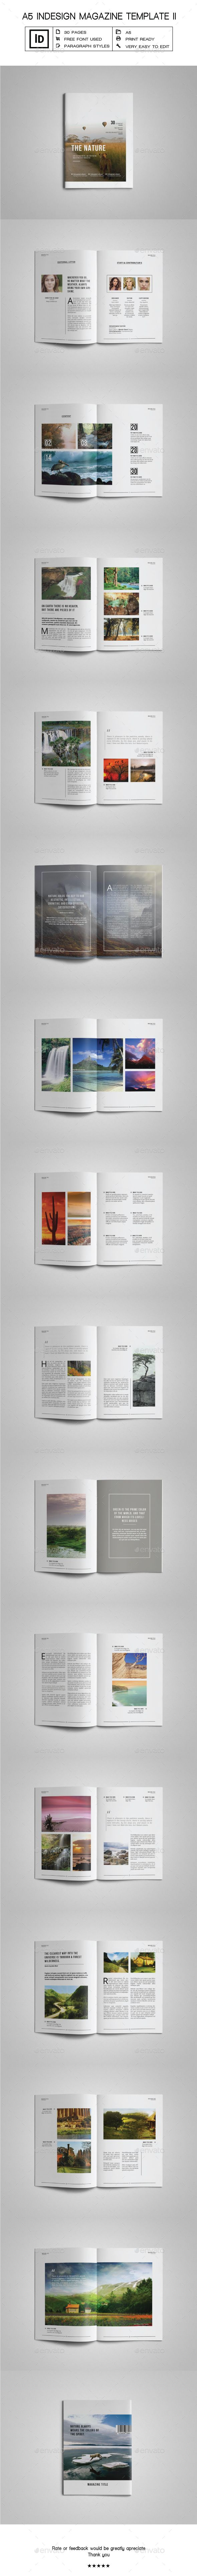 A5 Indesign Magazine Template II | Editorial